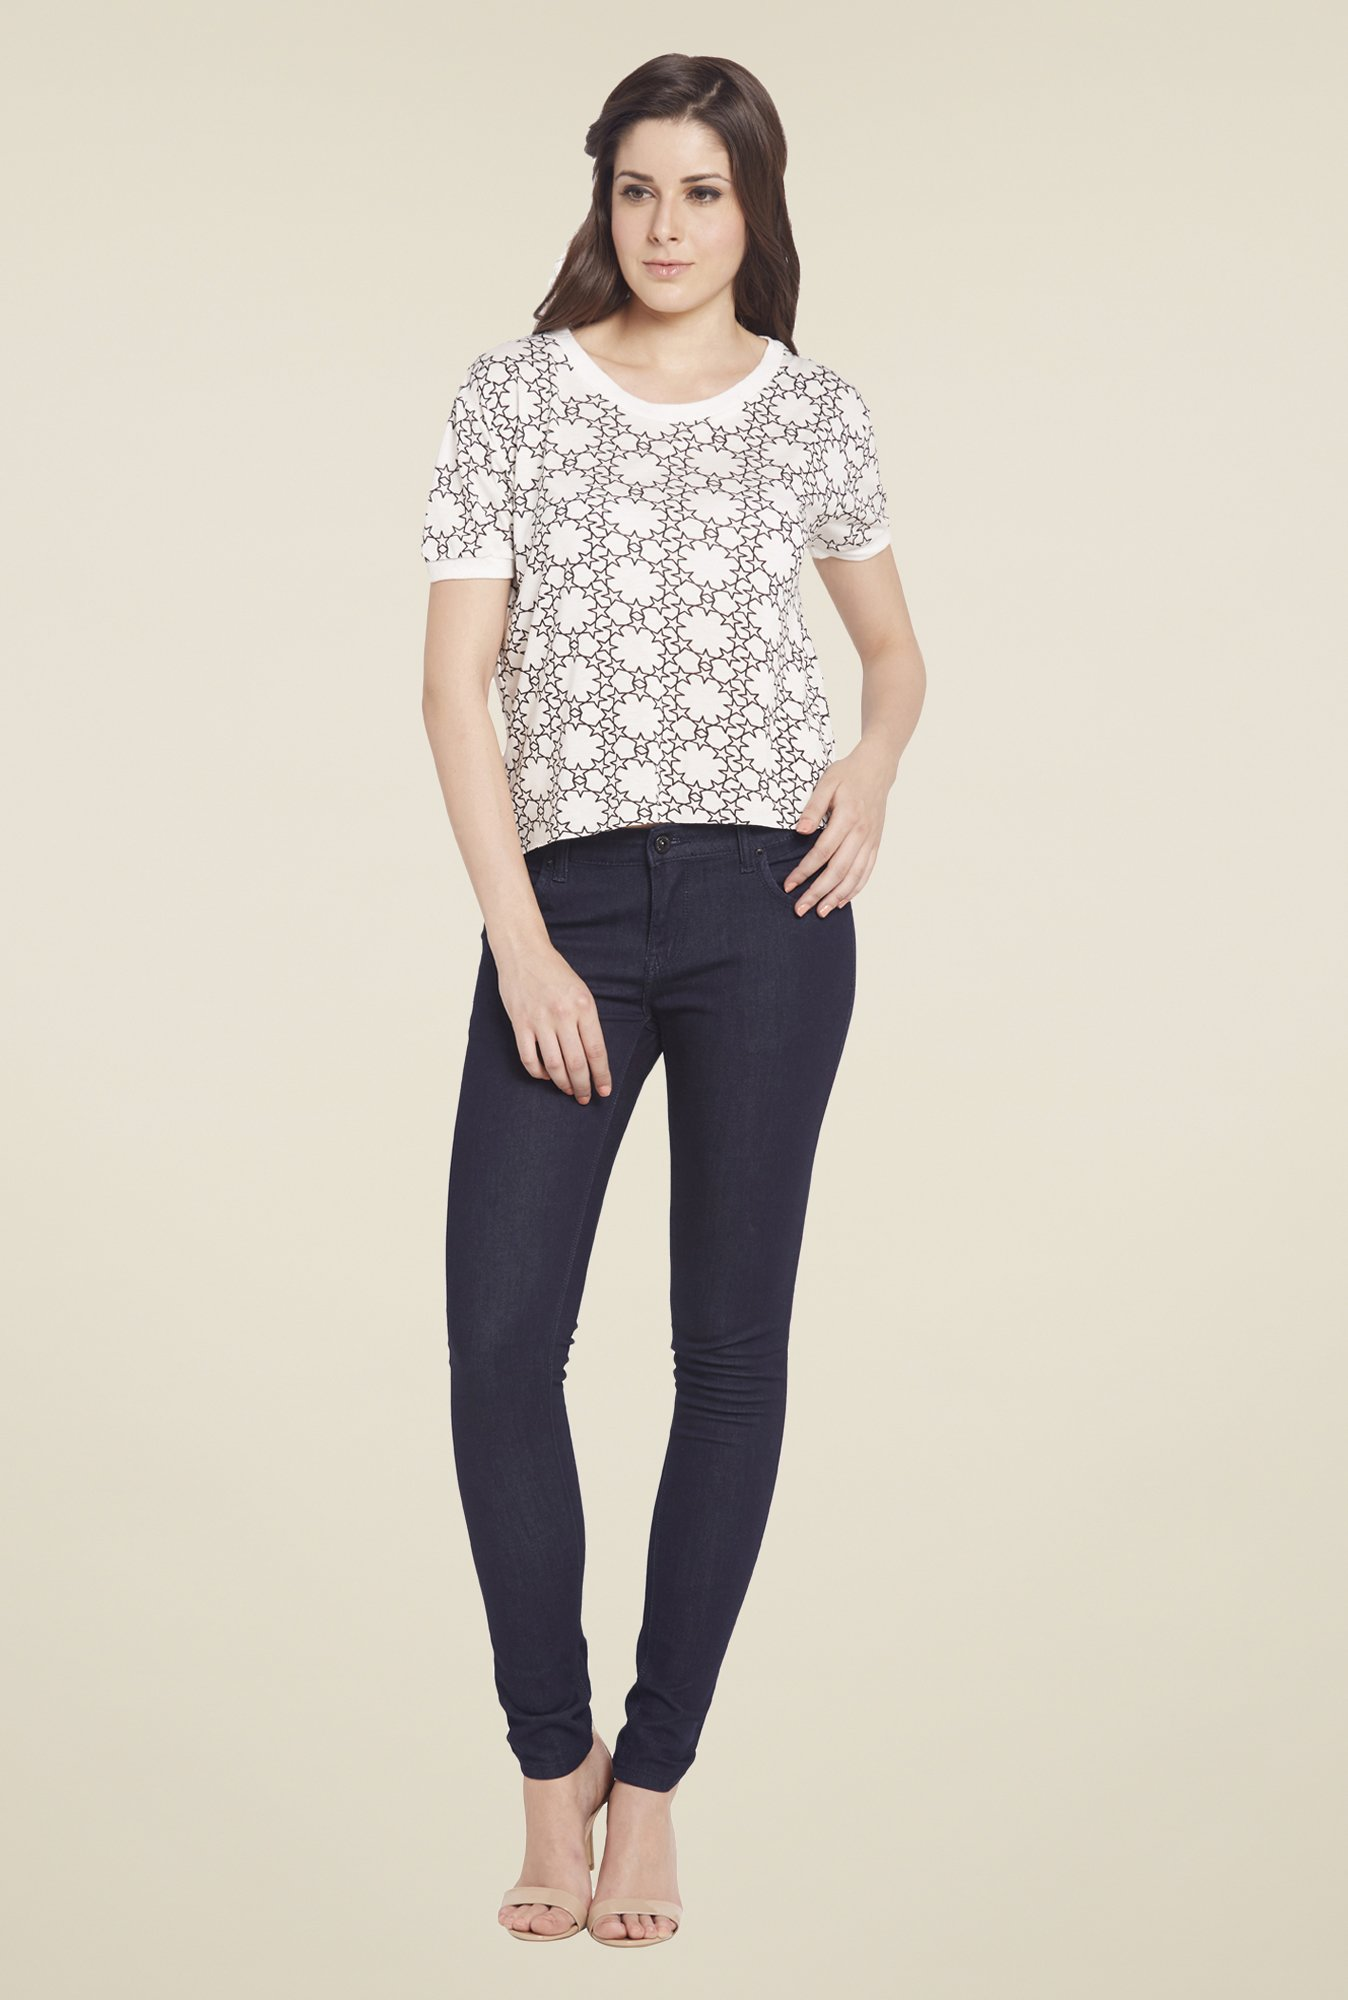 Globus White Printed Short Sleeve Top